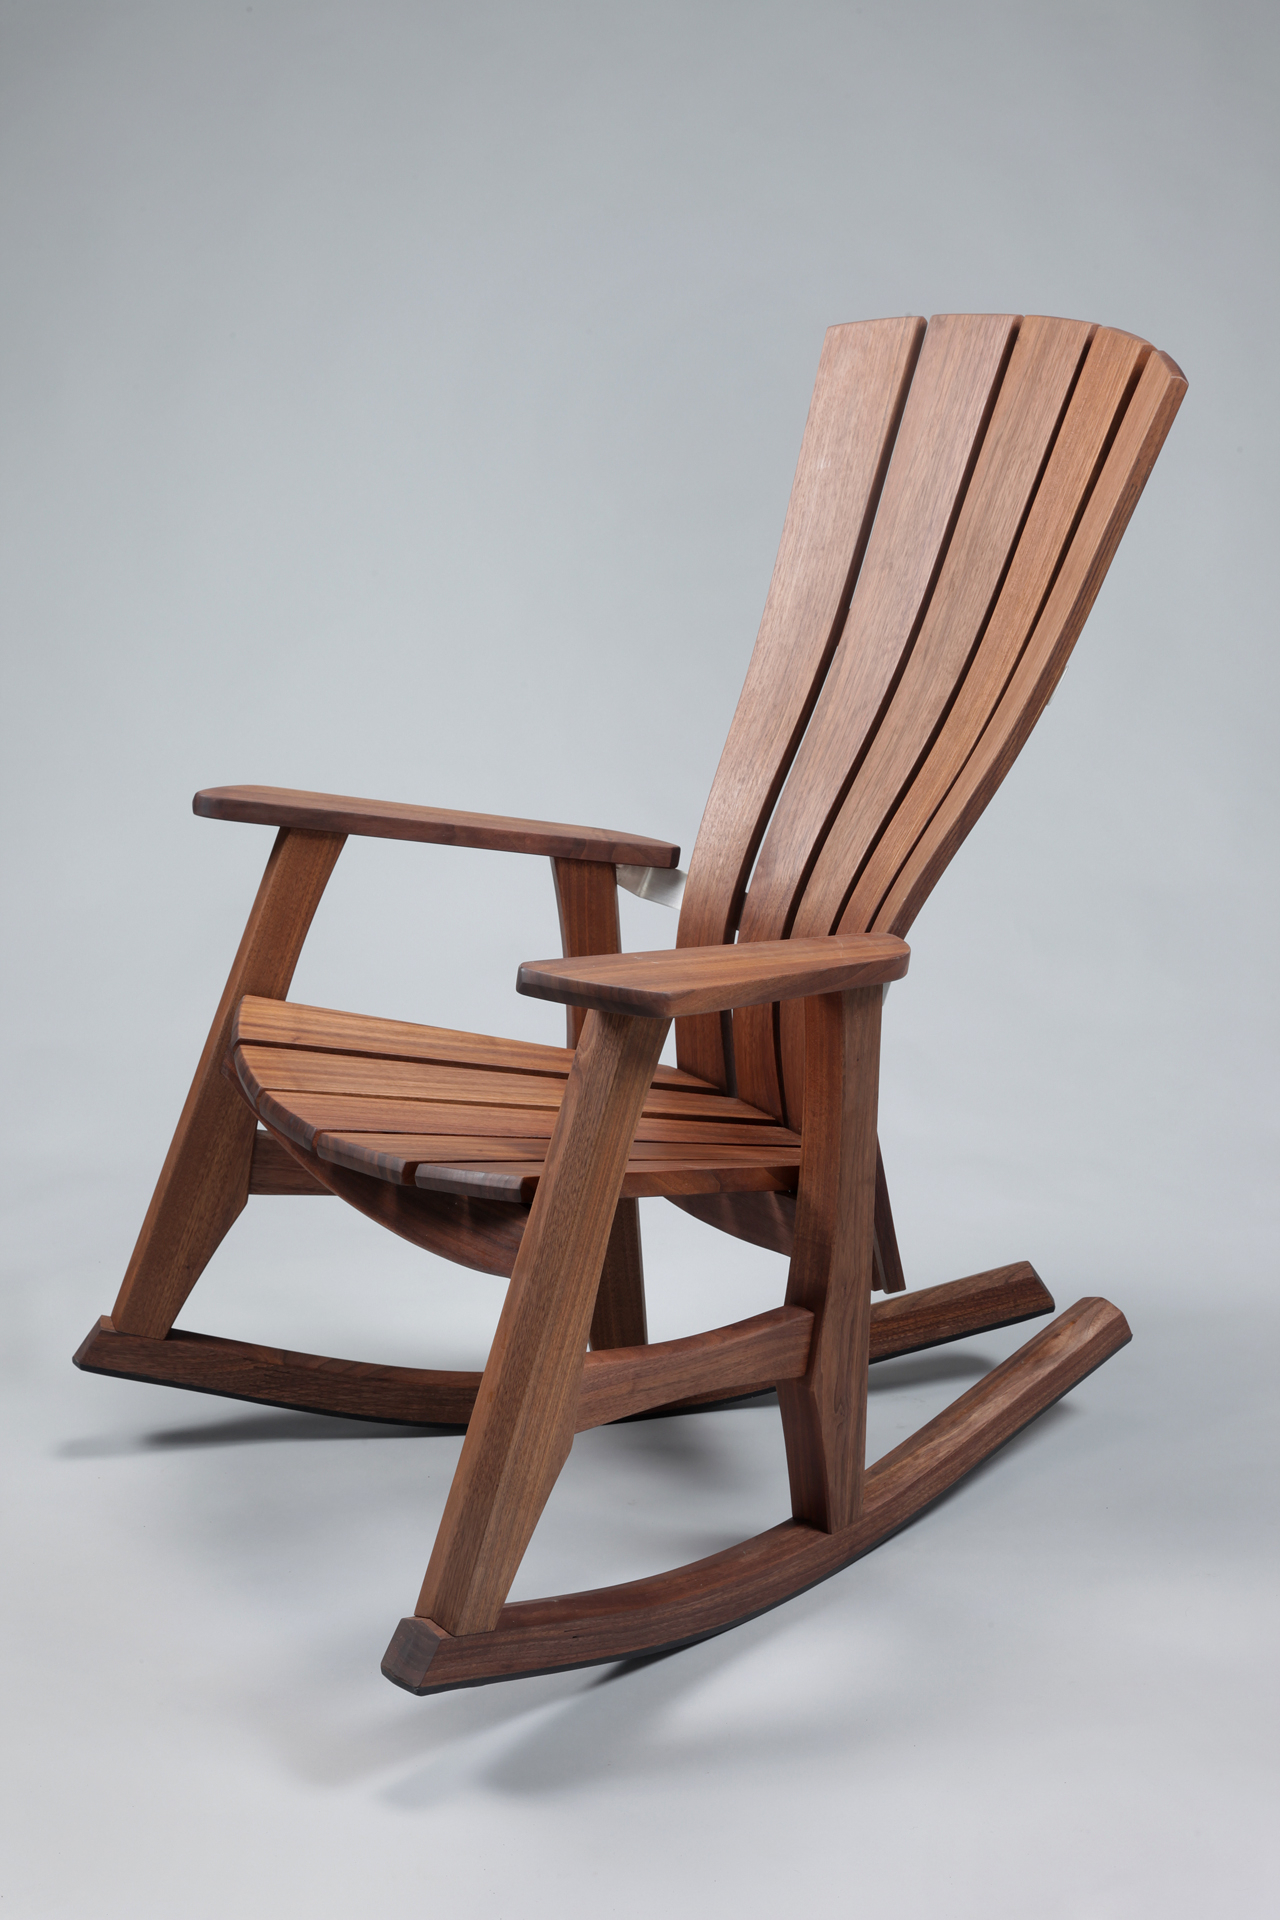 Wood Rocking Chair That Takes Spotlight | Home Decor News Intended For Beige Fabric And Cherry Wood Rocking Chairs (View 17 of 20)